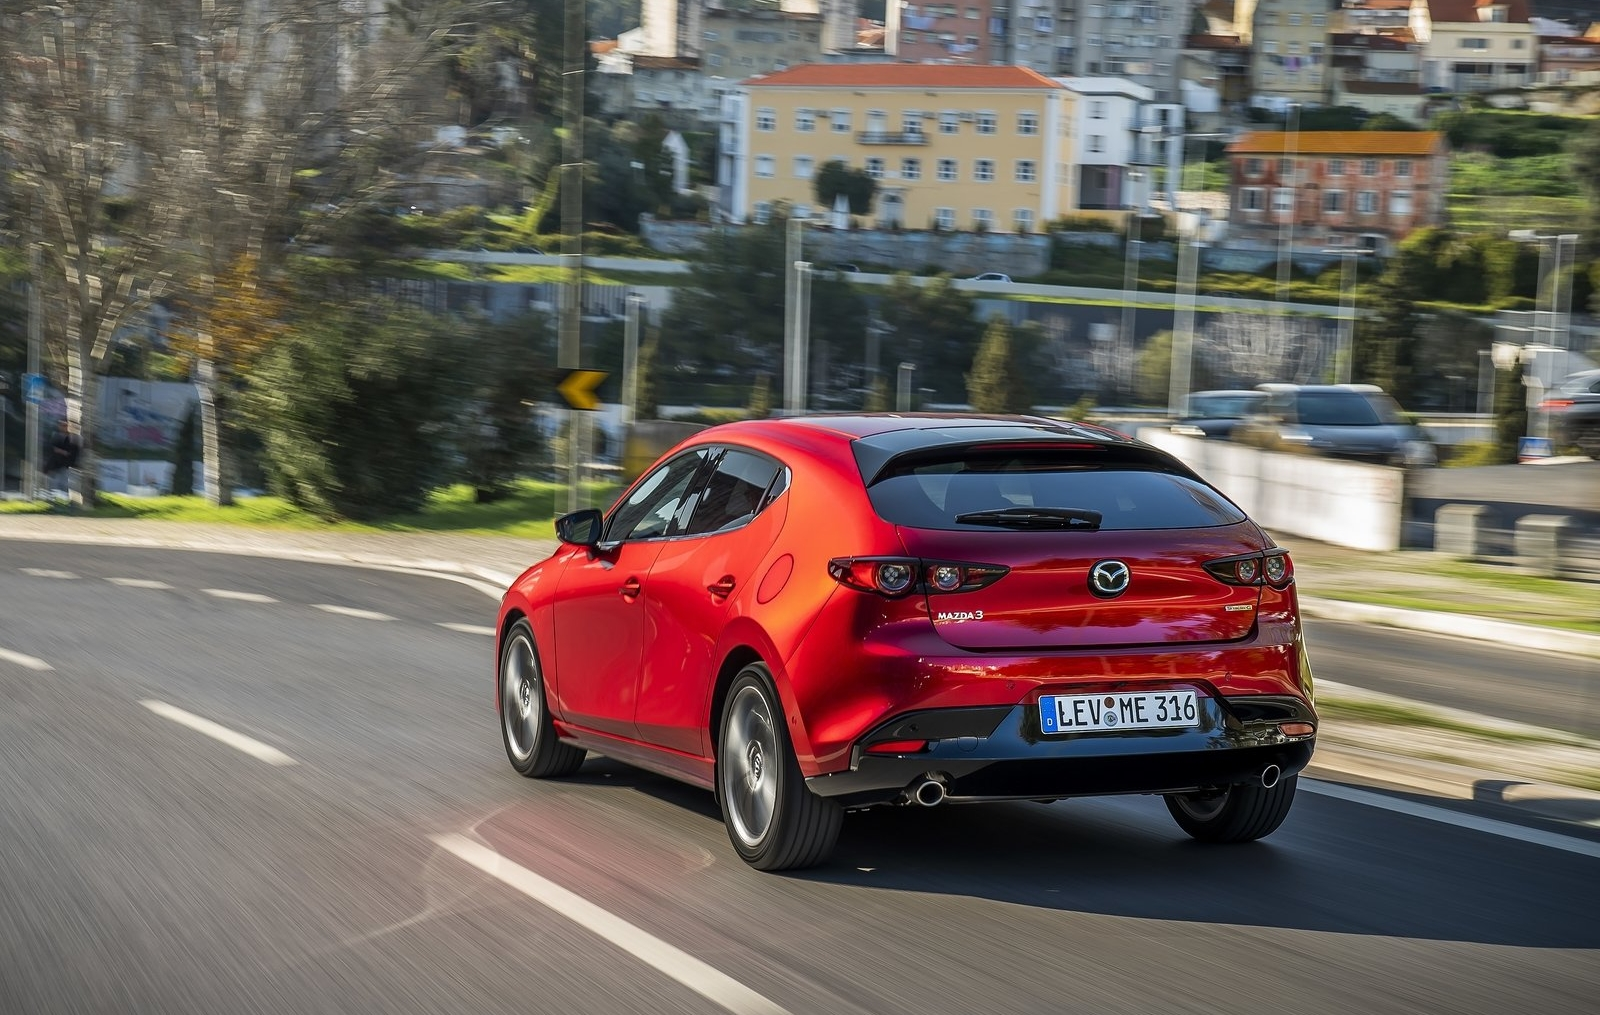 2019 Mazda 3 AWD Review – Promotion and Relegation - The Truth ... | 1015x1600